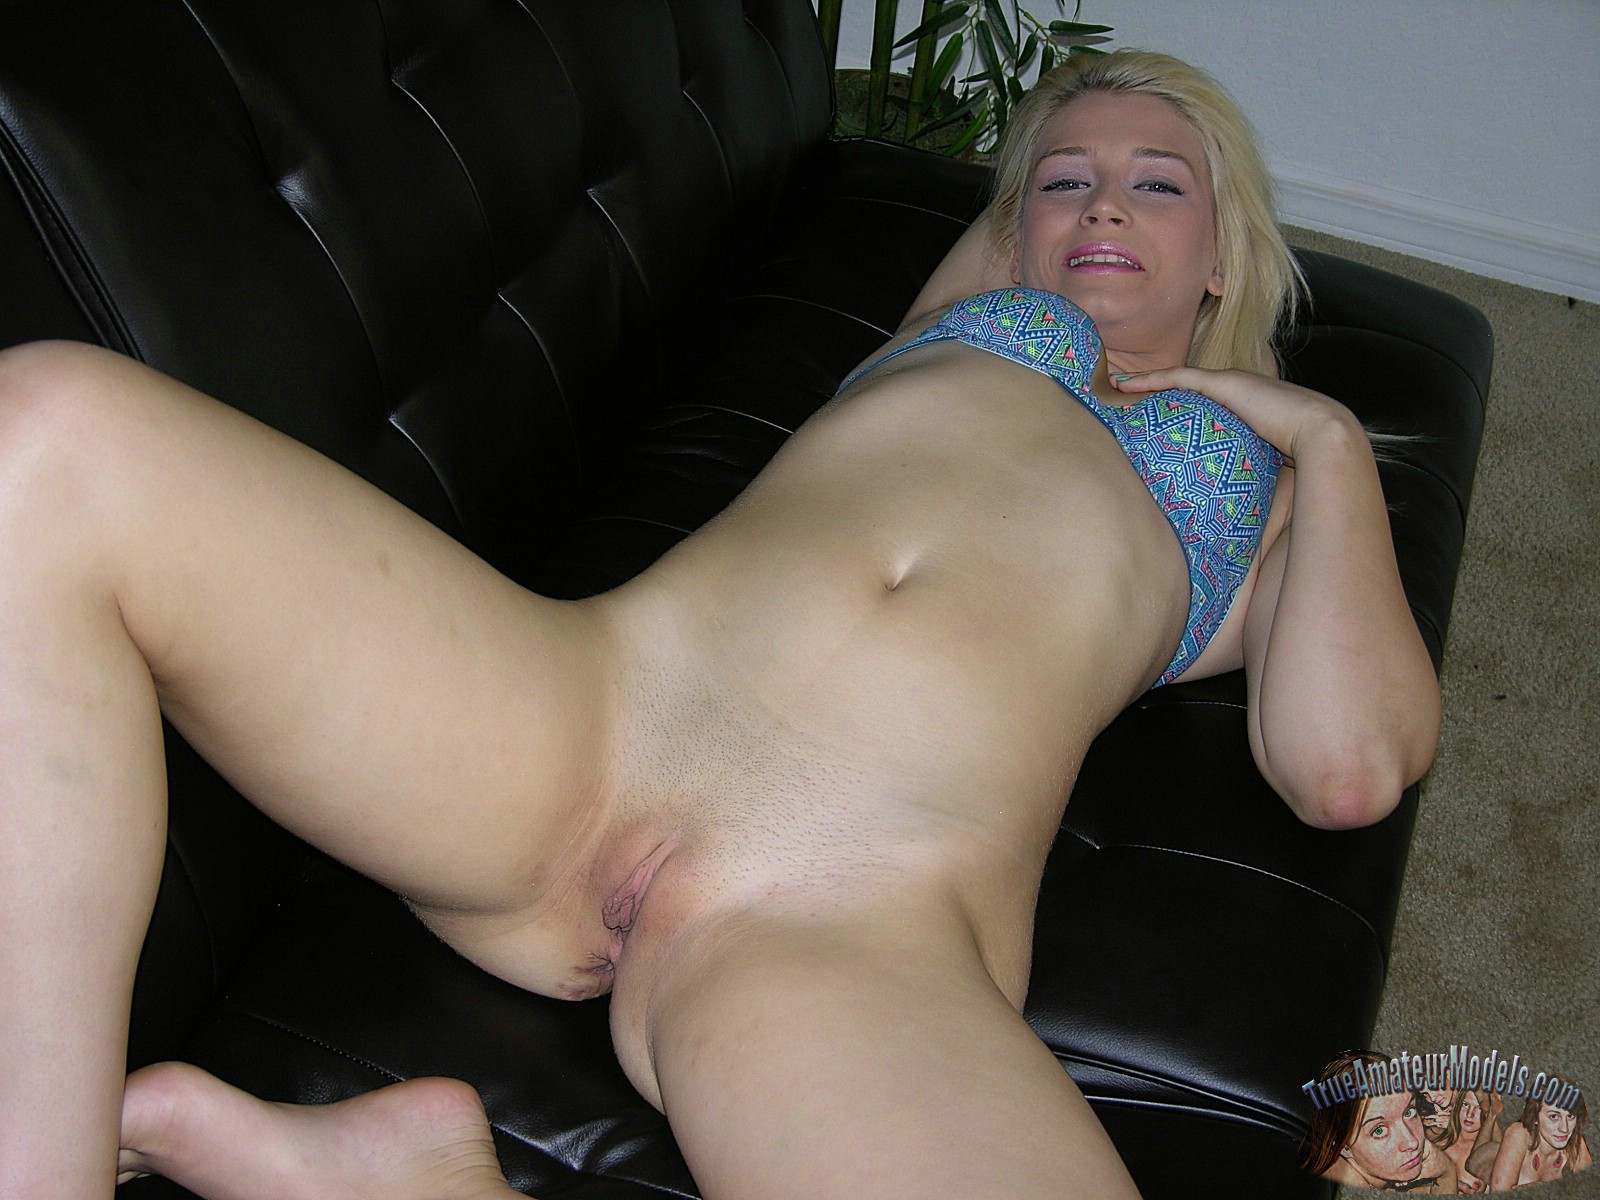 French Teen Blonde Amateur